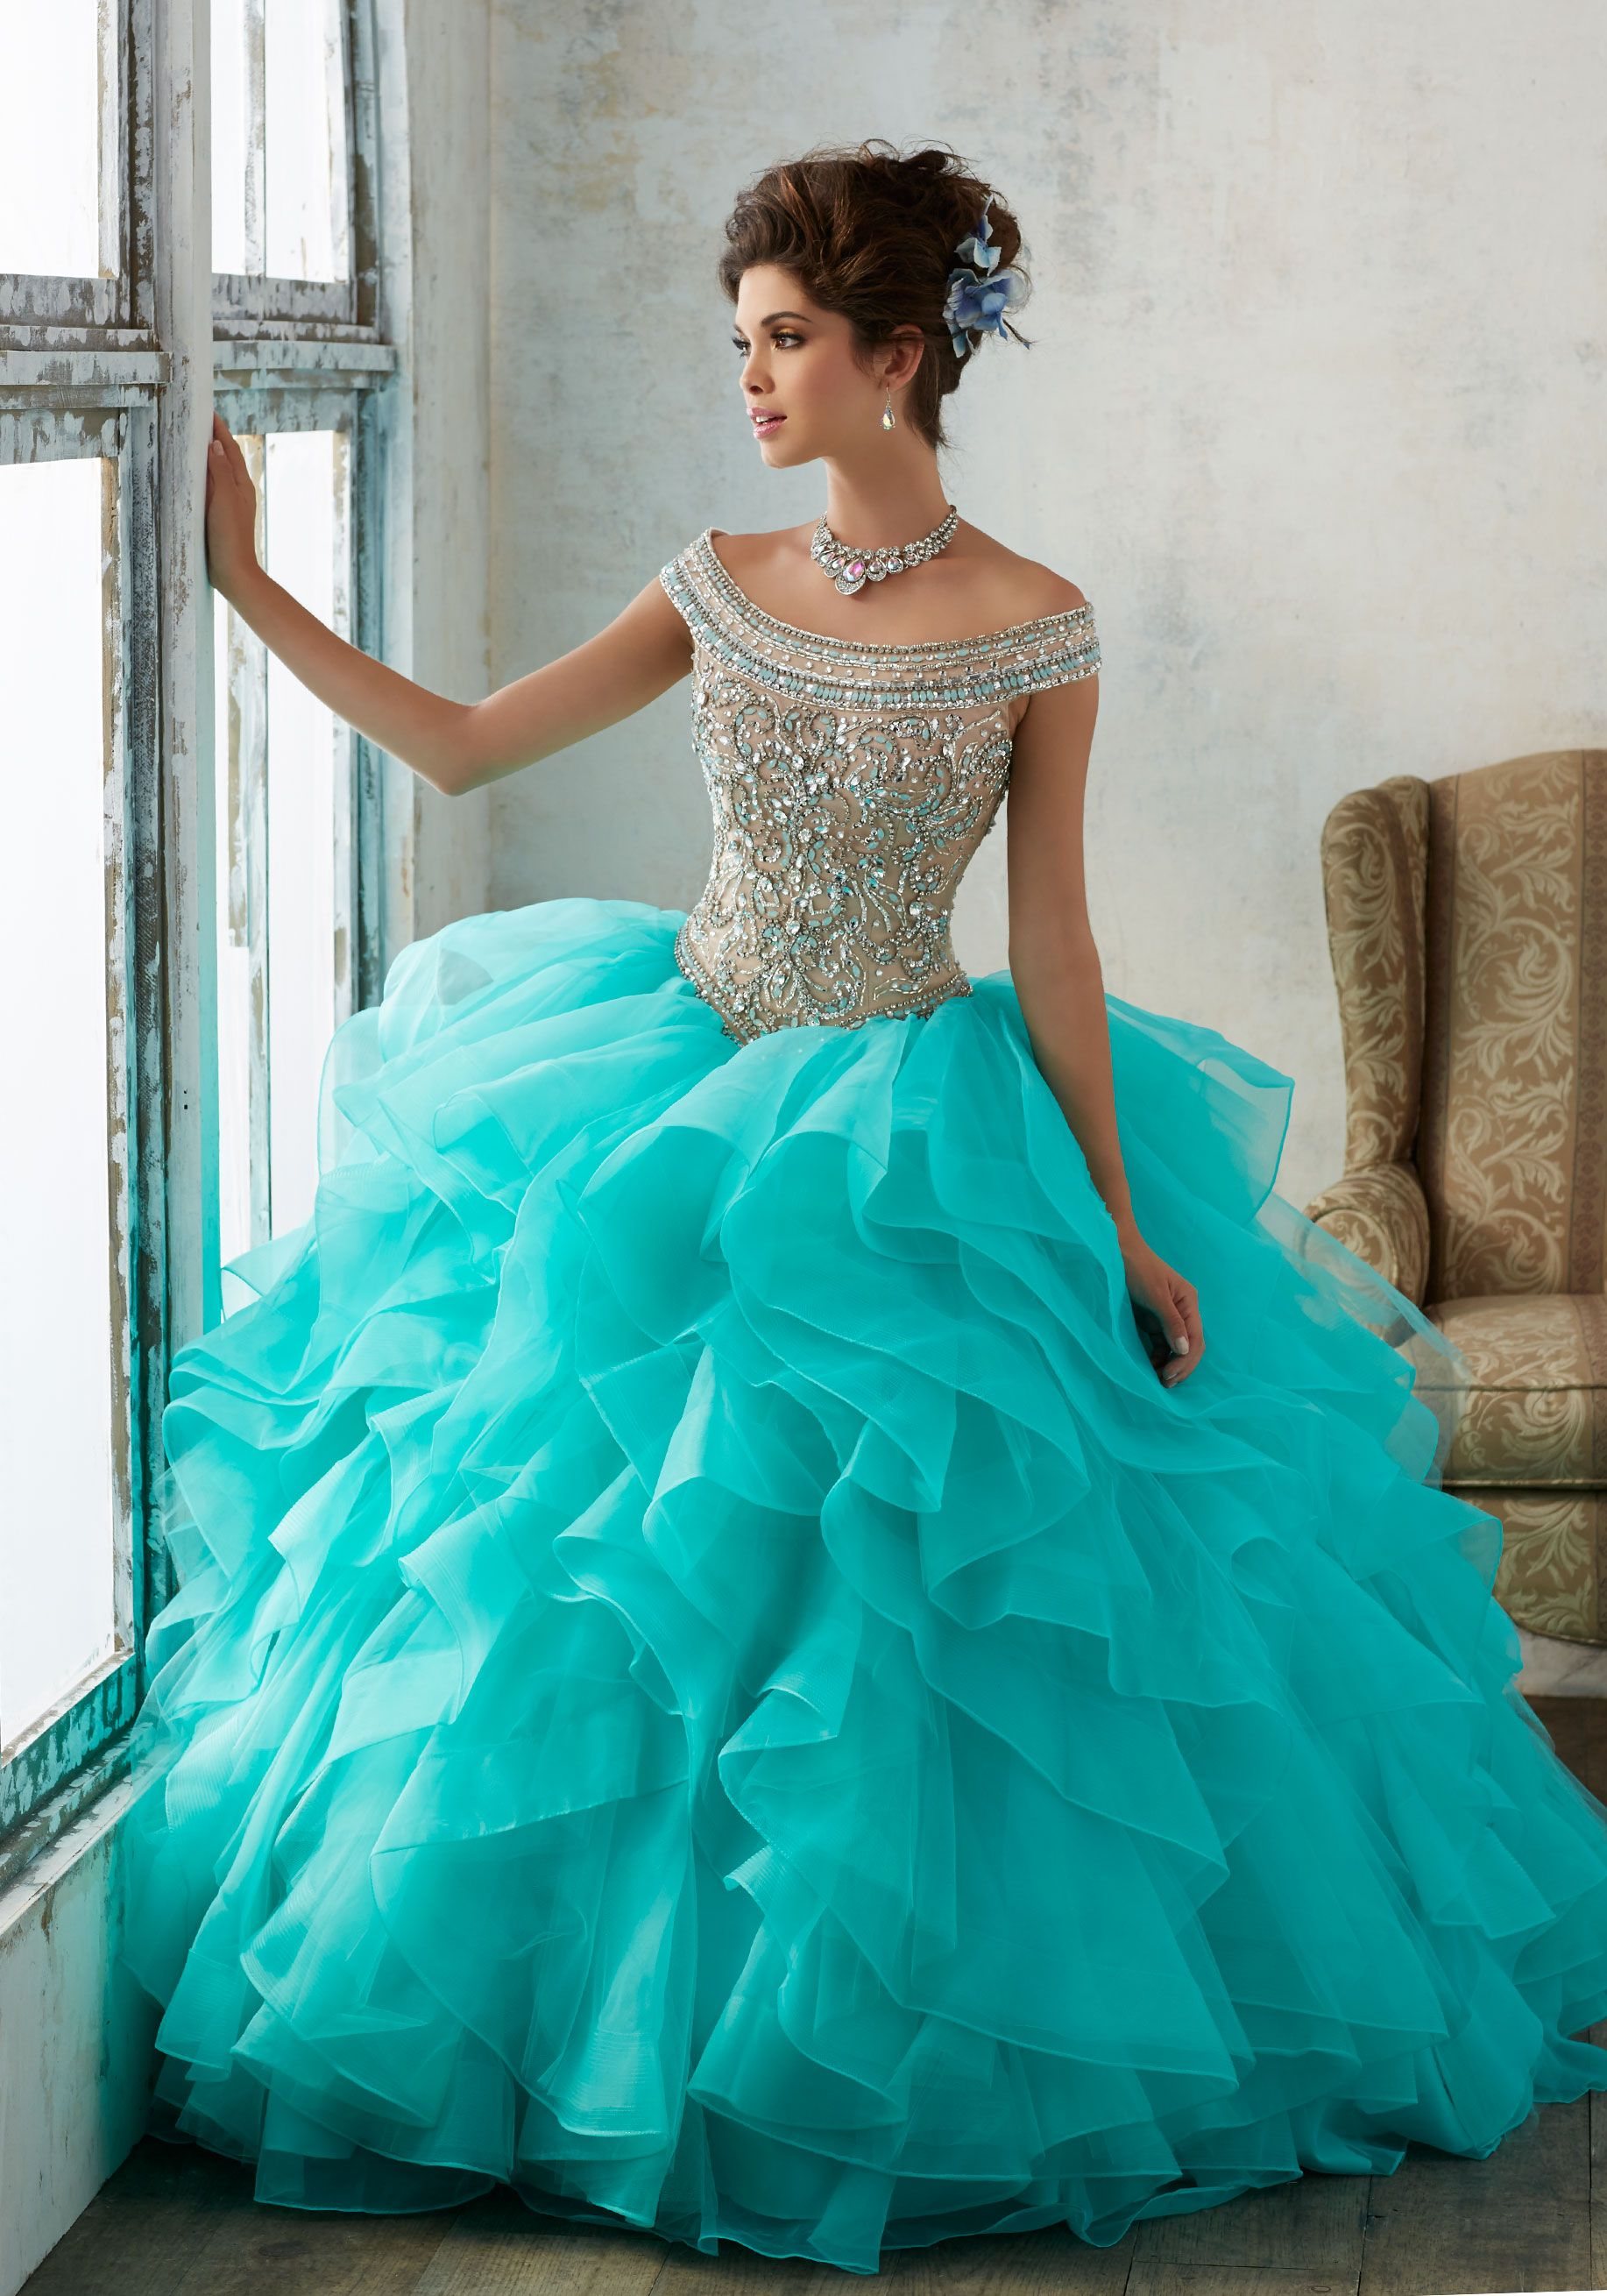 911b58e1f14 Quinceañera Ballgown featuring a Beaded Bodice with Off-the-Shoulder  Neckline and a Flounced Organza Skirt Accented with Horsehair Trim.